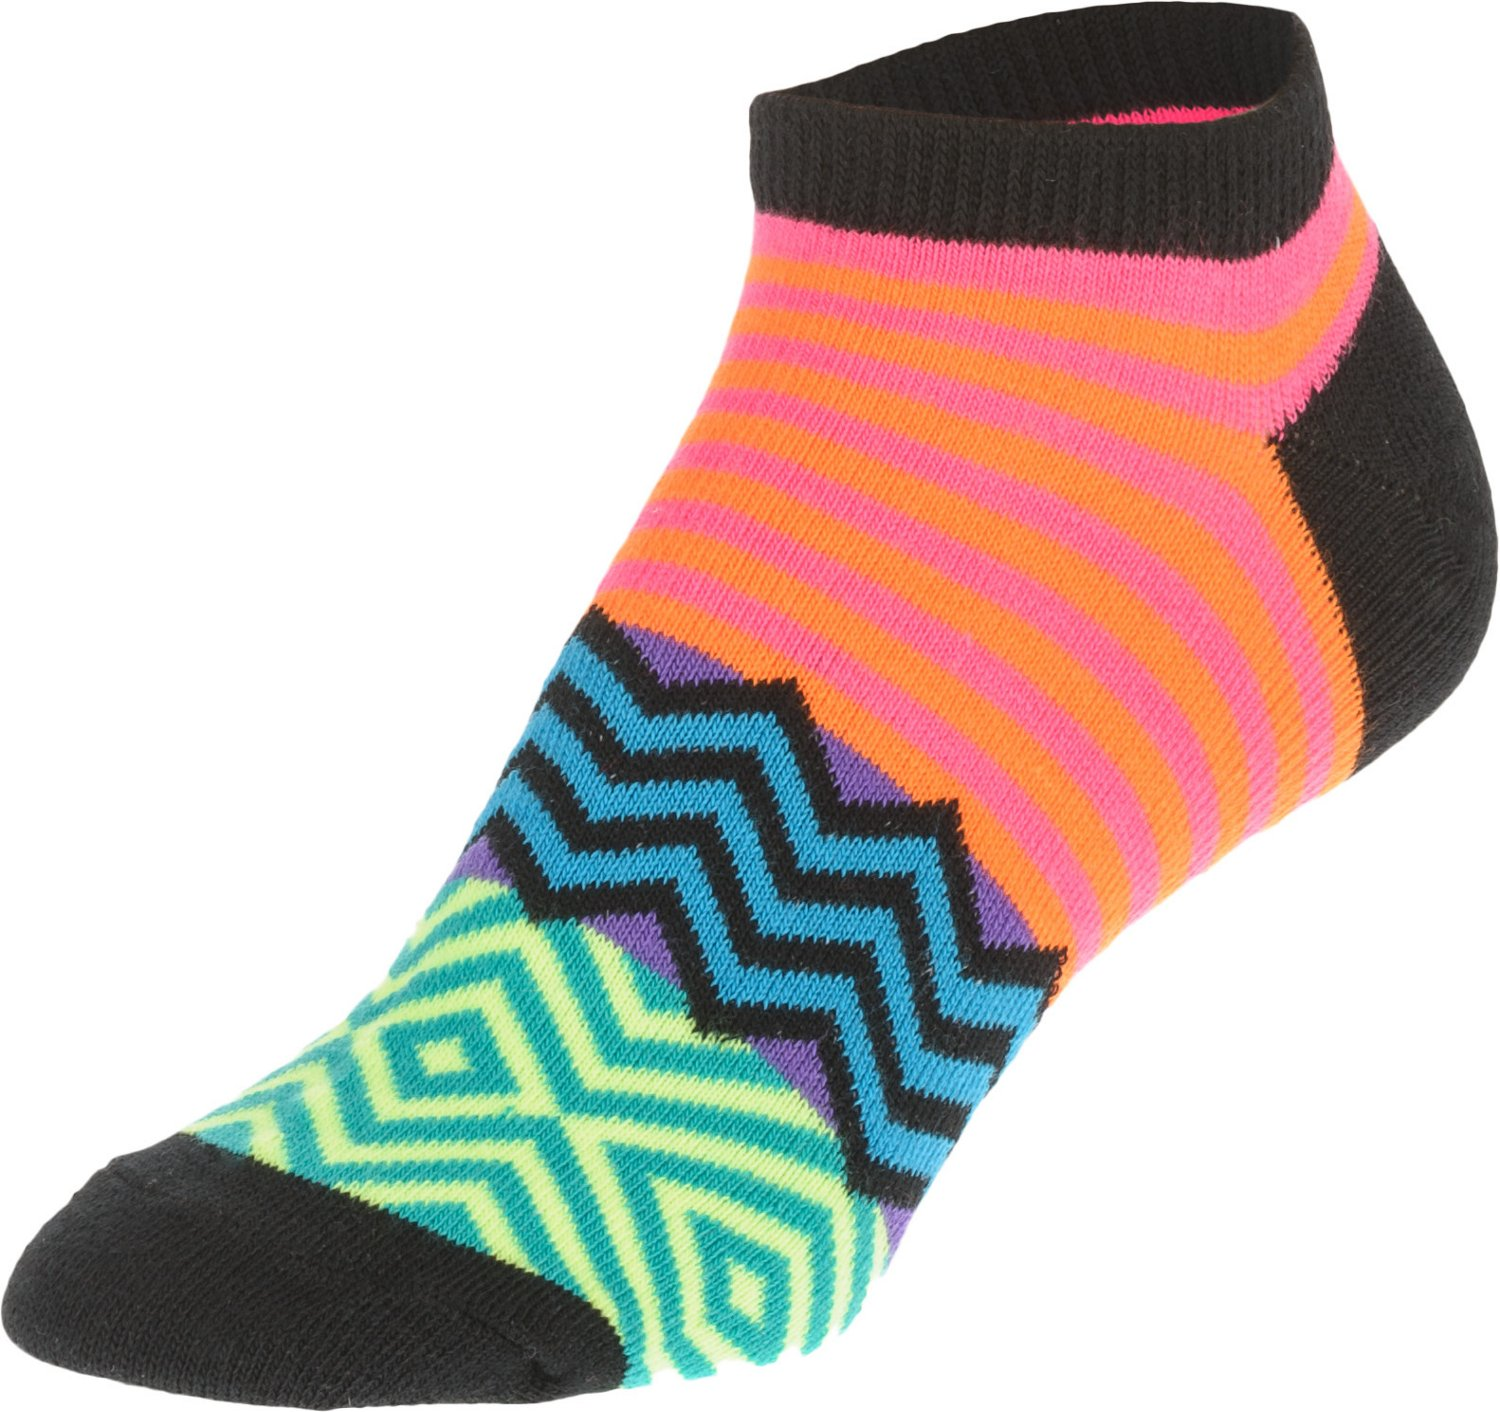 BCG Women's Aztec Assorted Pattern Ankle Socks 6 Pack - view number 2